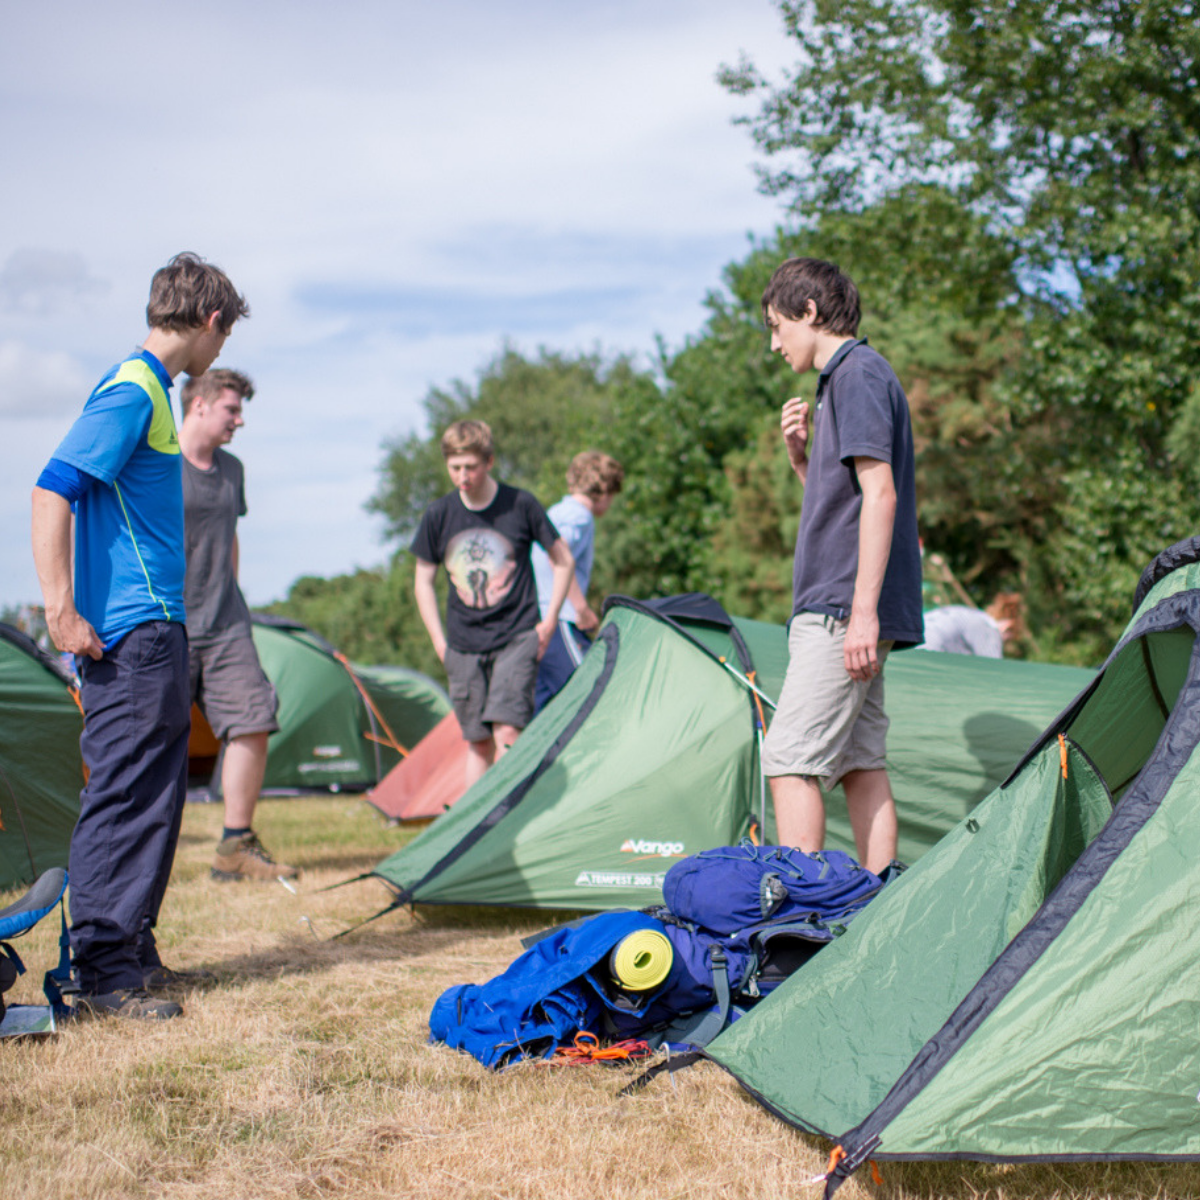 Group of boys stood around tents